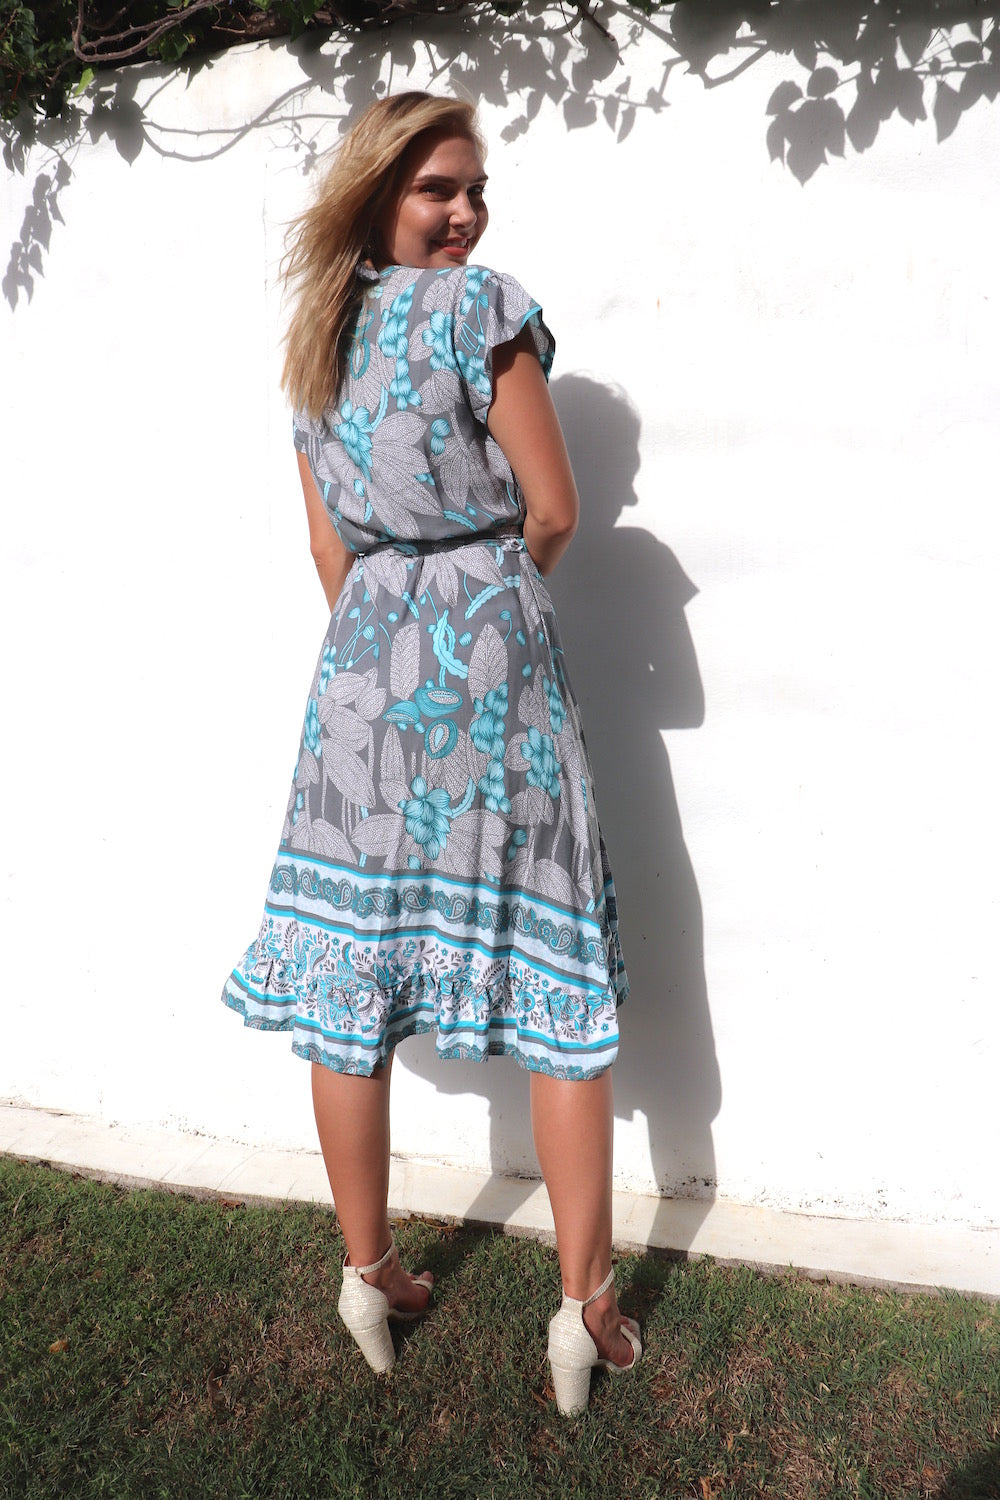 RO Short Bahama Wrap Dress In Ocean Vine Only 1 Free Size Left